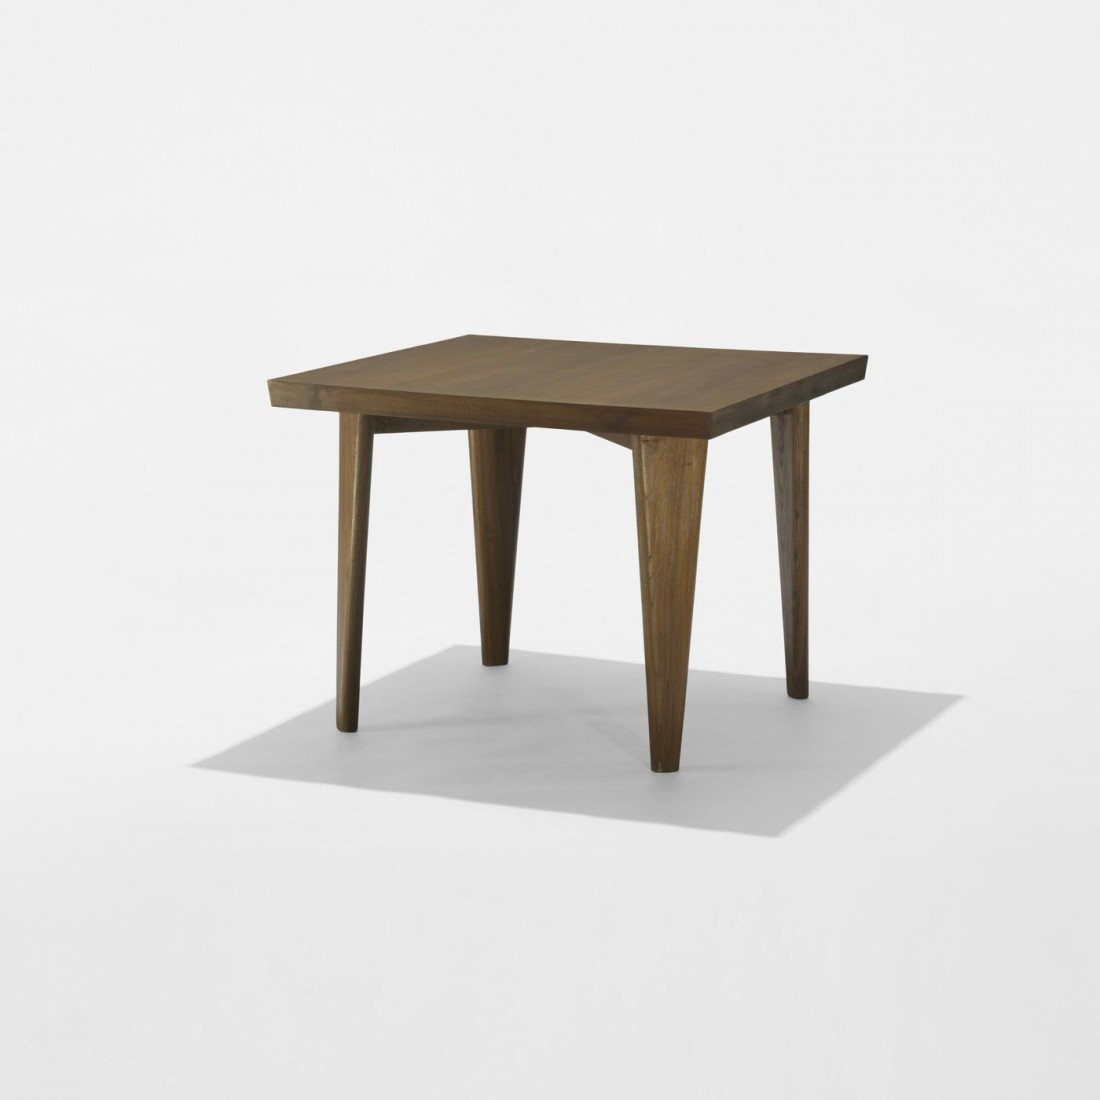 160: Pierre Jeanneret dining table